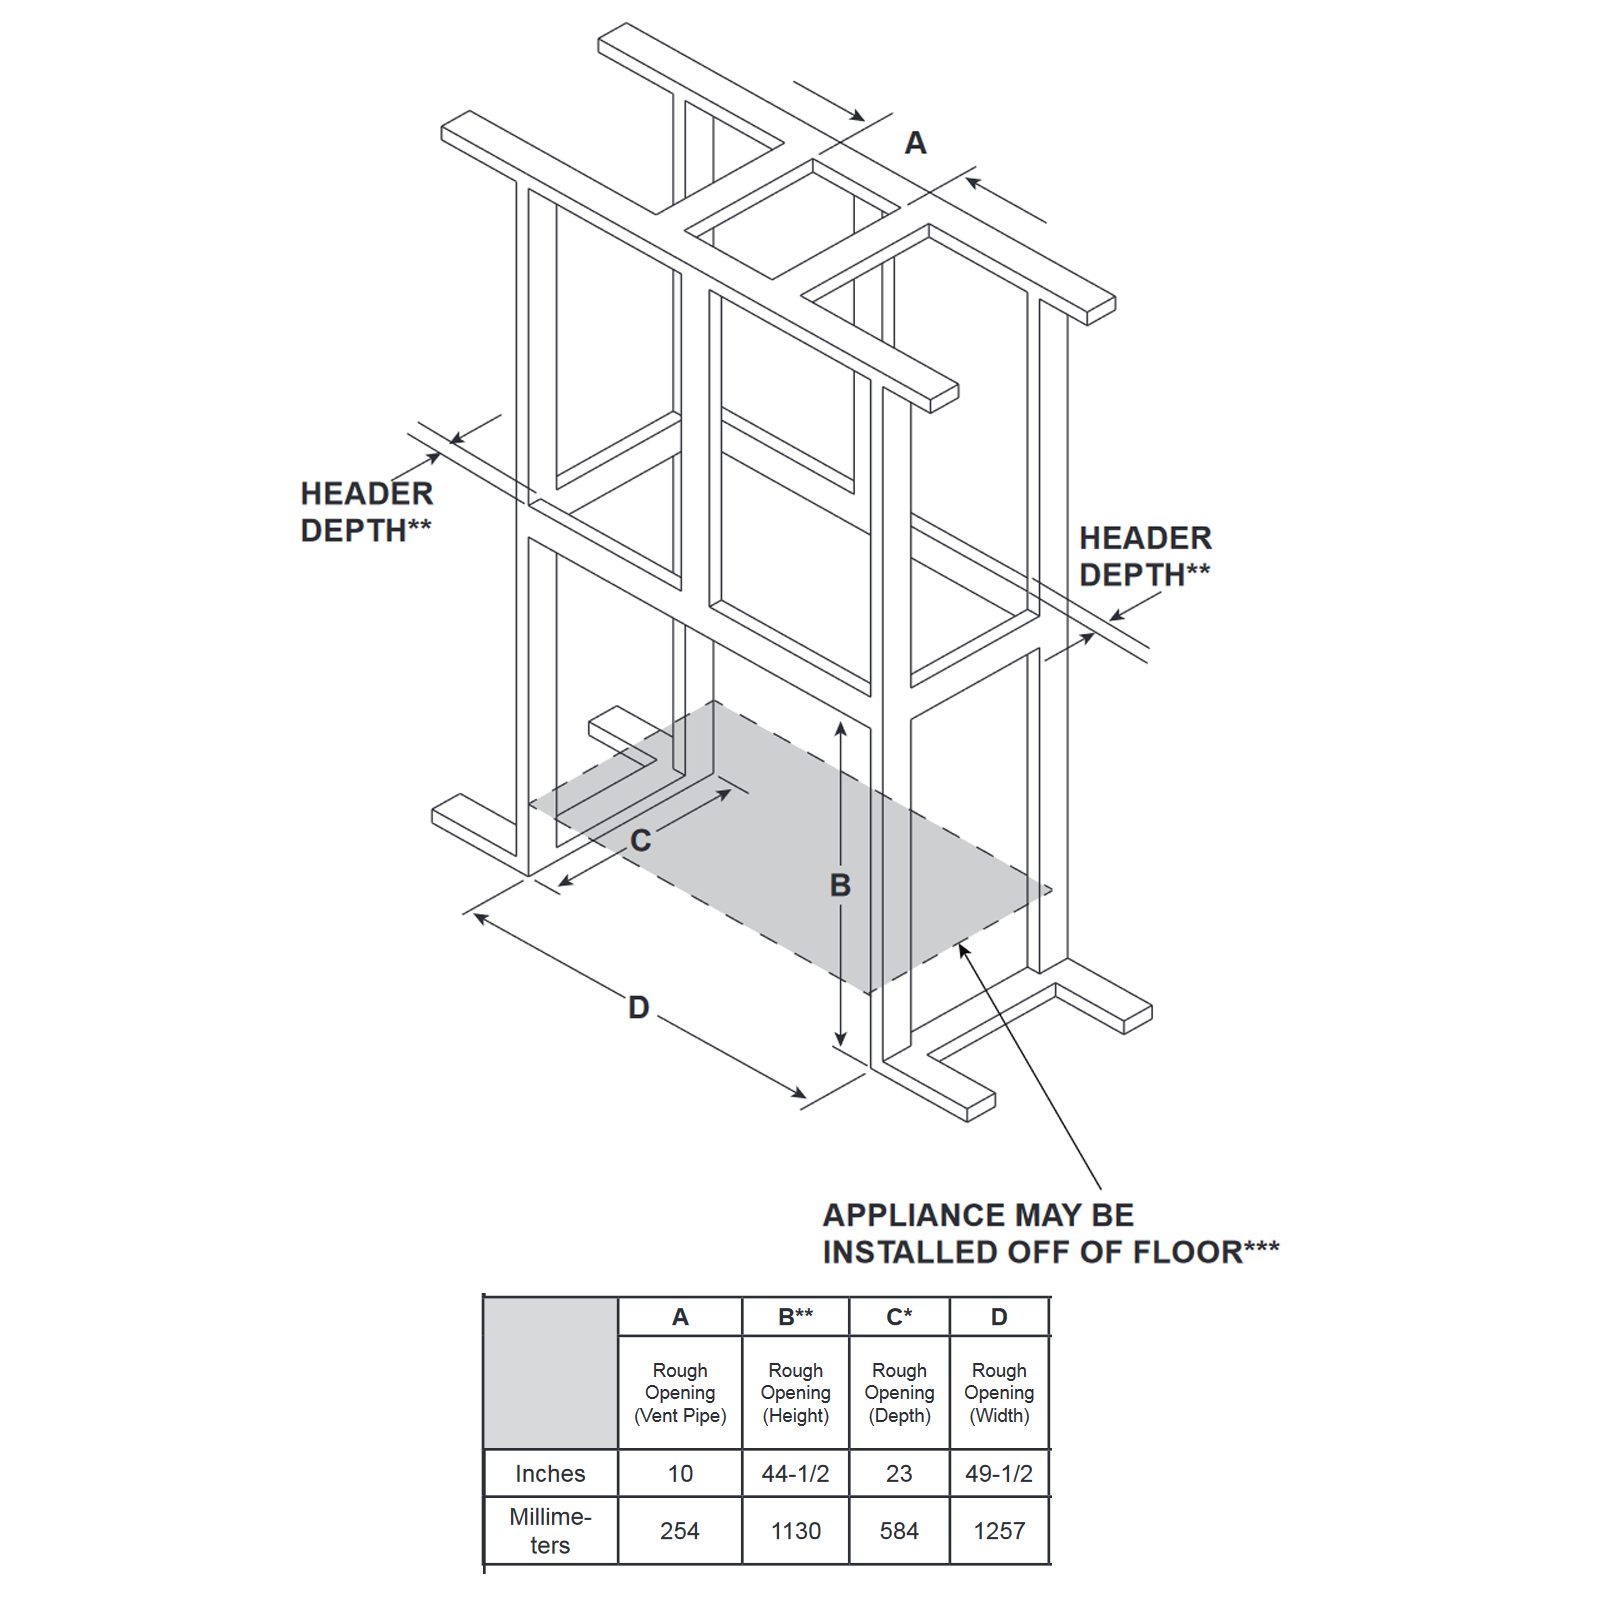 ODFORTG-36 Technical Drawing 2